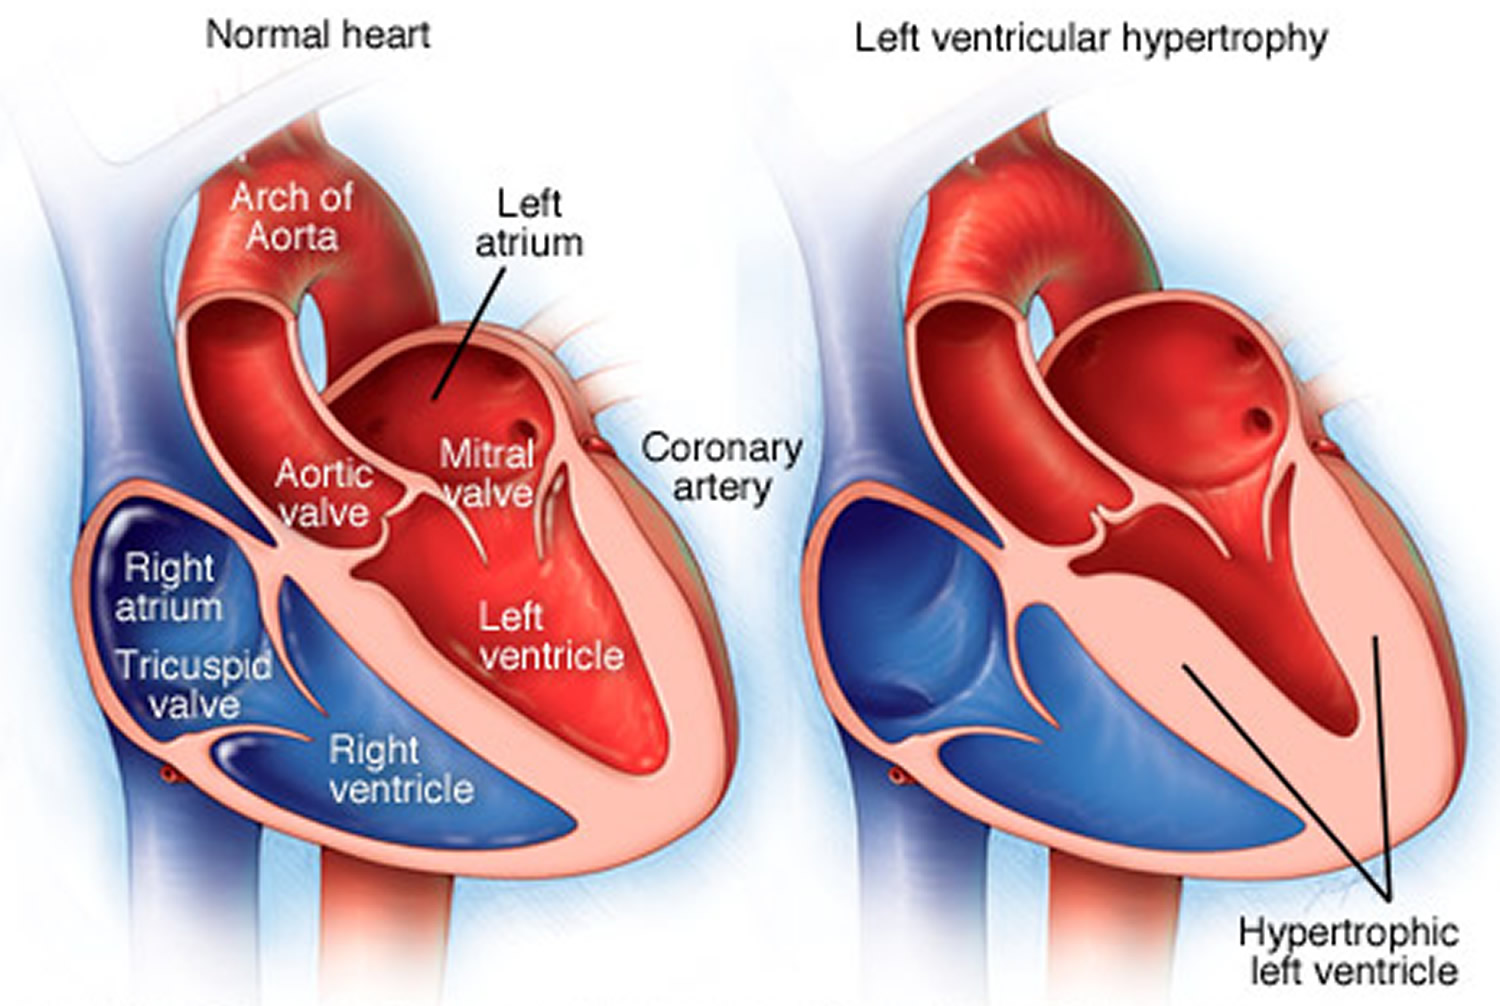 Myocardial hypertrophy: types, causes, symptoms, diagnosis and treatment 62